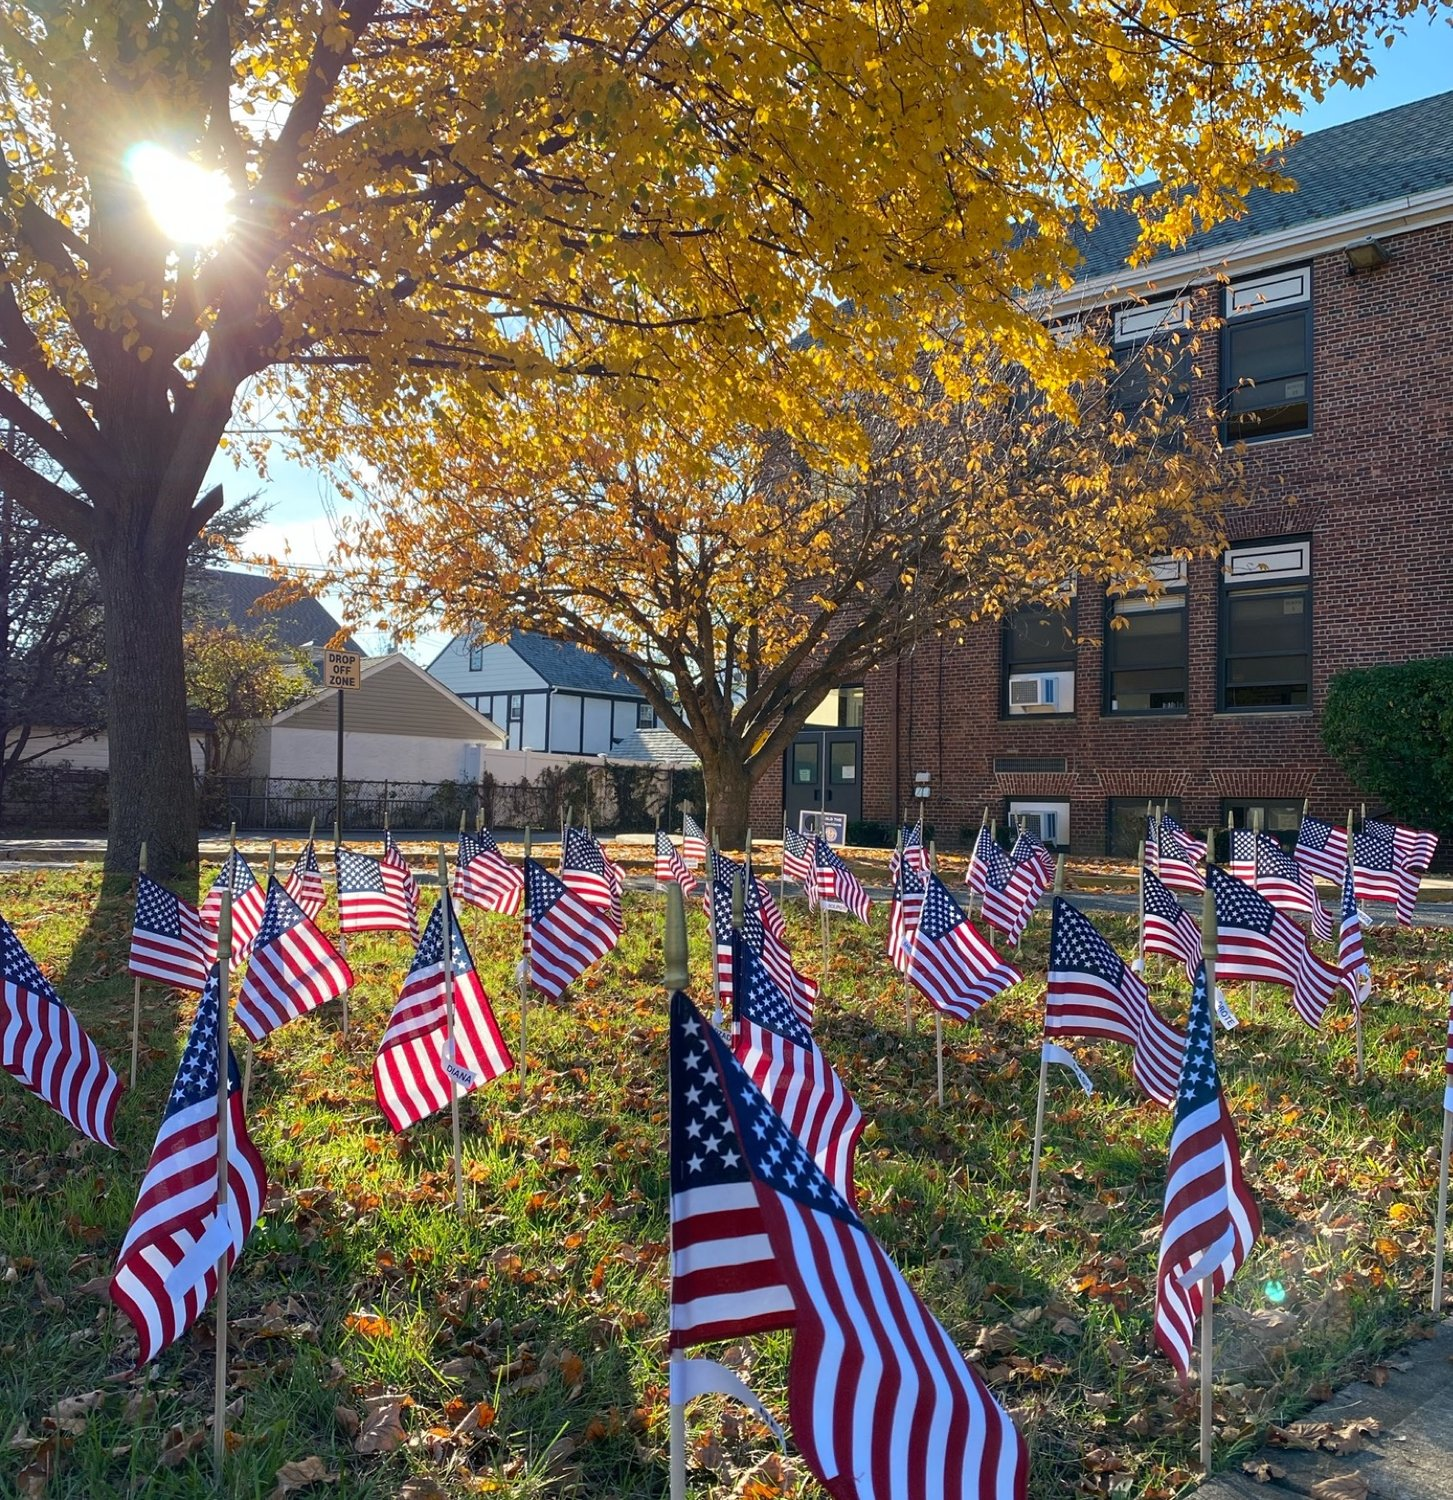 Flags lined the school's lawn as part of the many Veterans Day activities the school district took part in to salute servicemen and women.